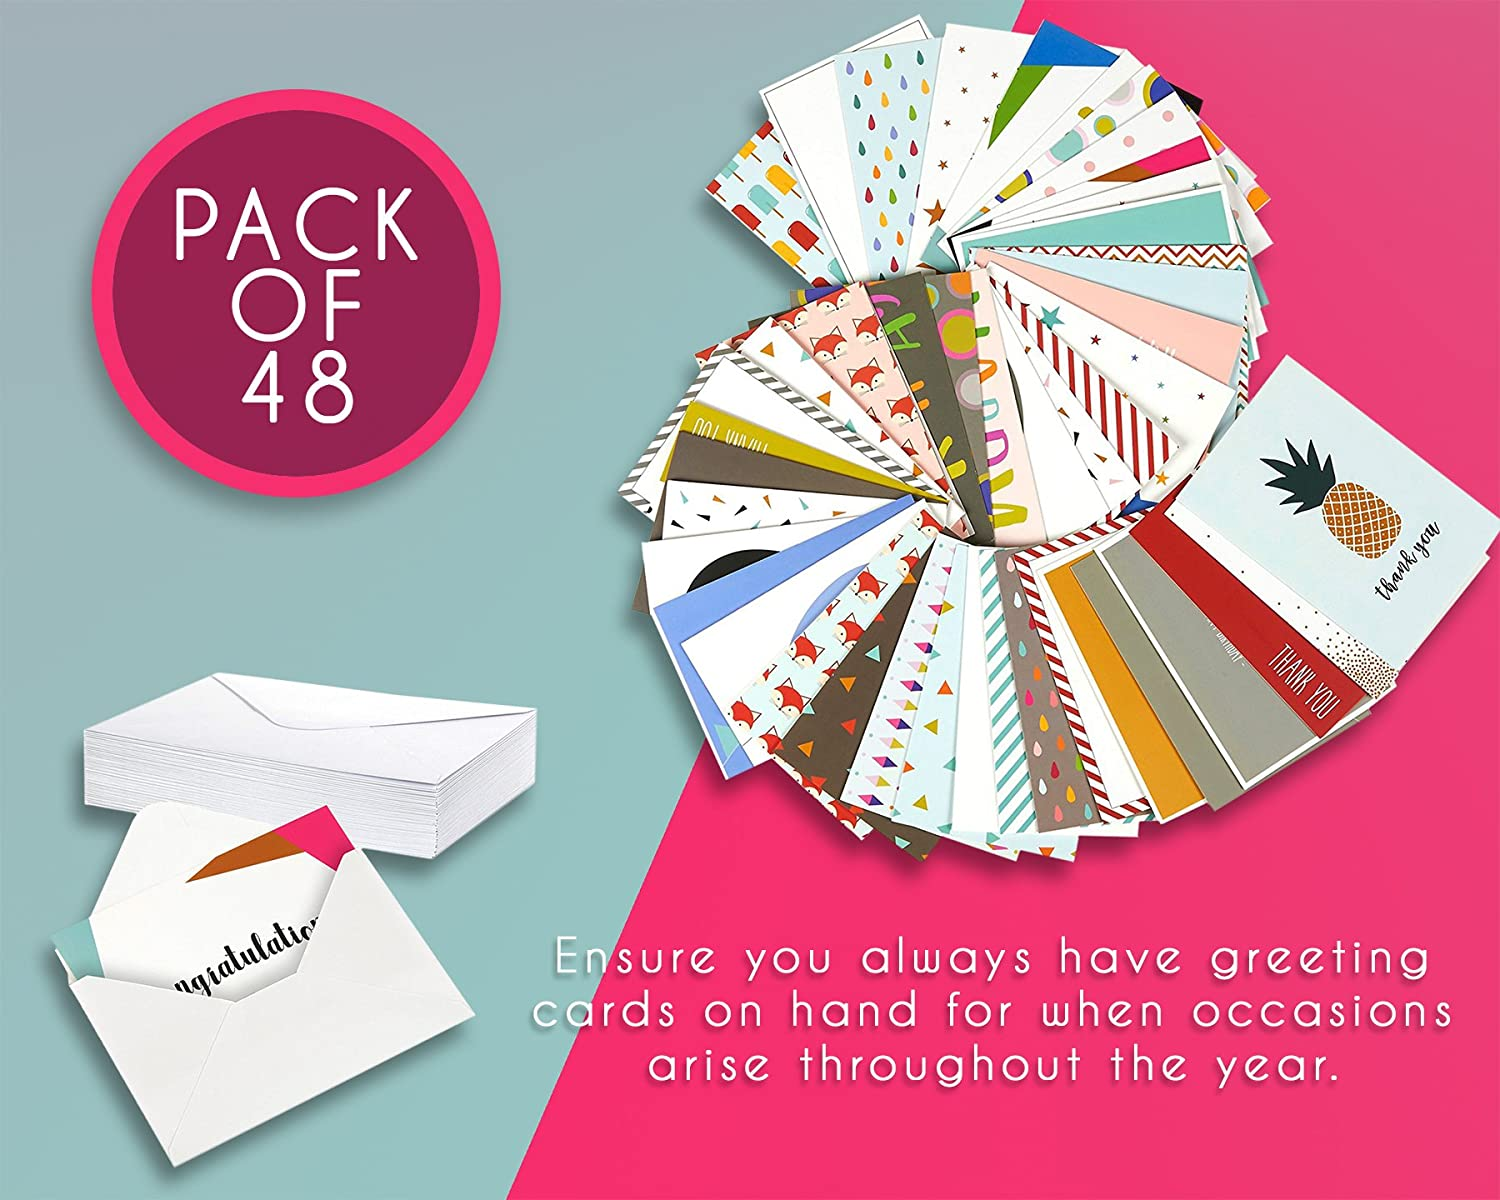 Amazon 48 pack assorted all occasion greeting cards includes amazon 48 pack assorted all occasion greeting cards includes happy birthday congratulations thank you note cards assortment designs bulk box set m4hsunfo